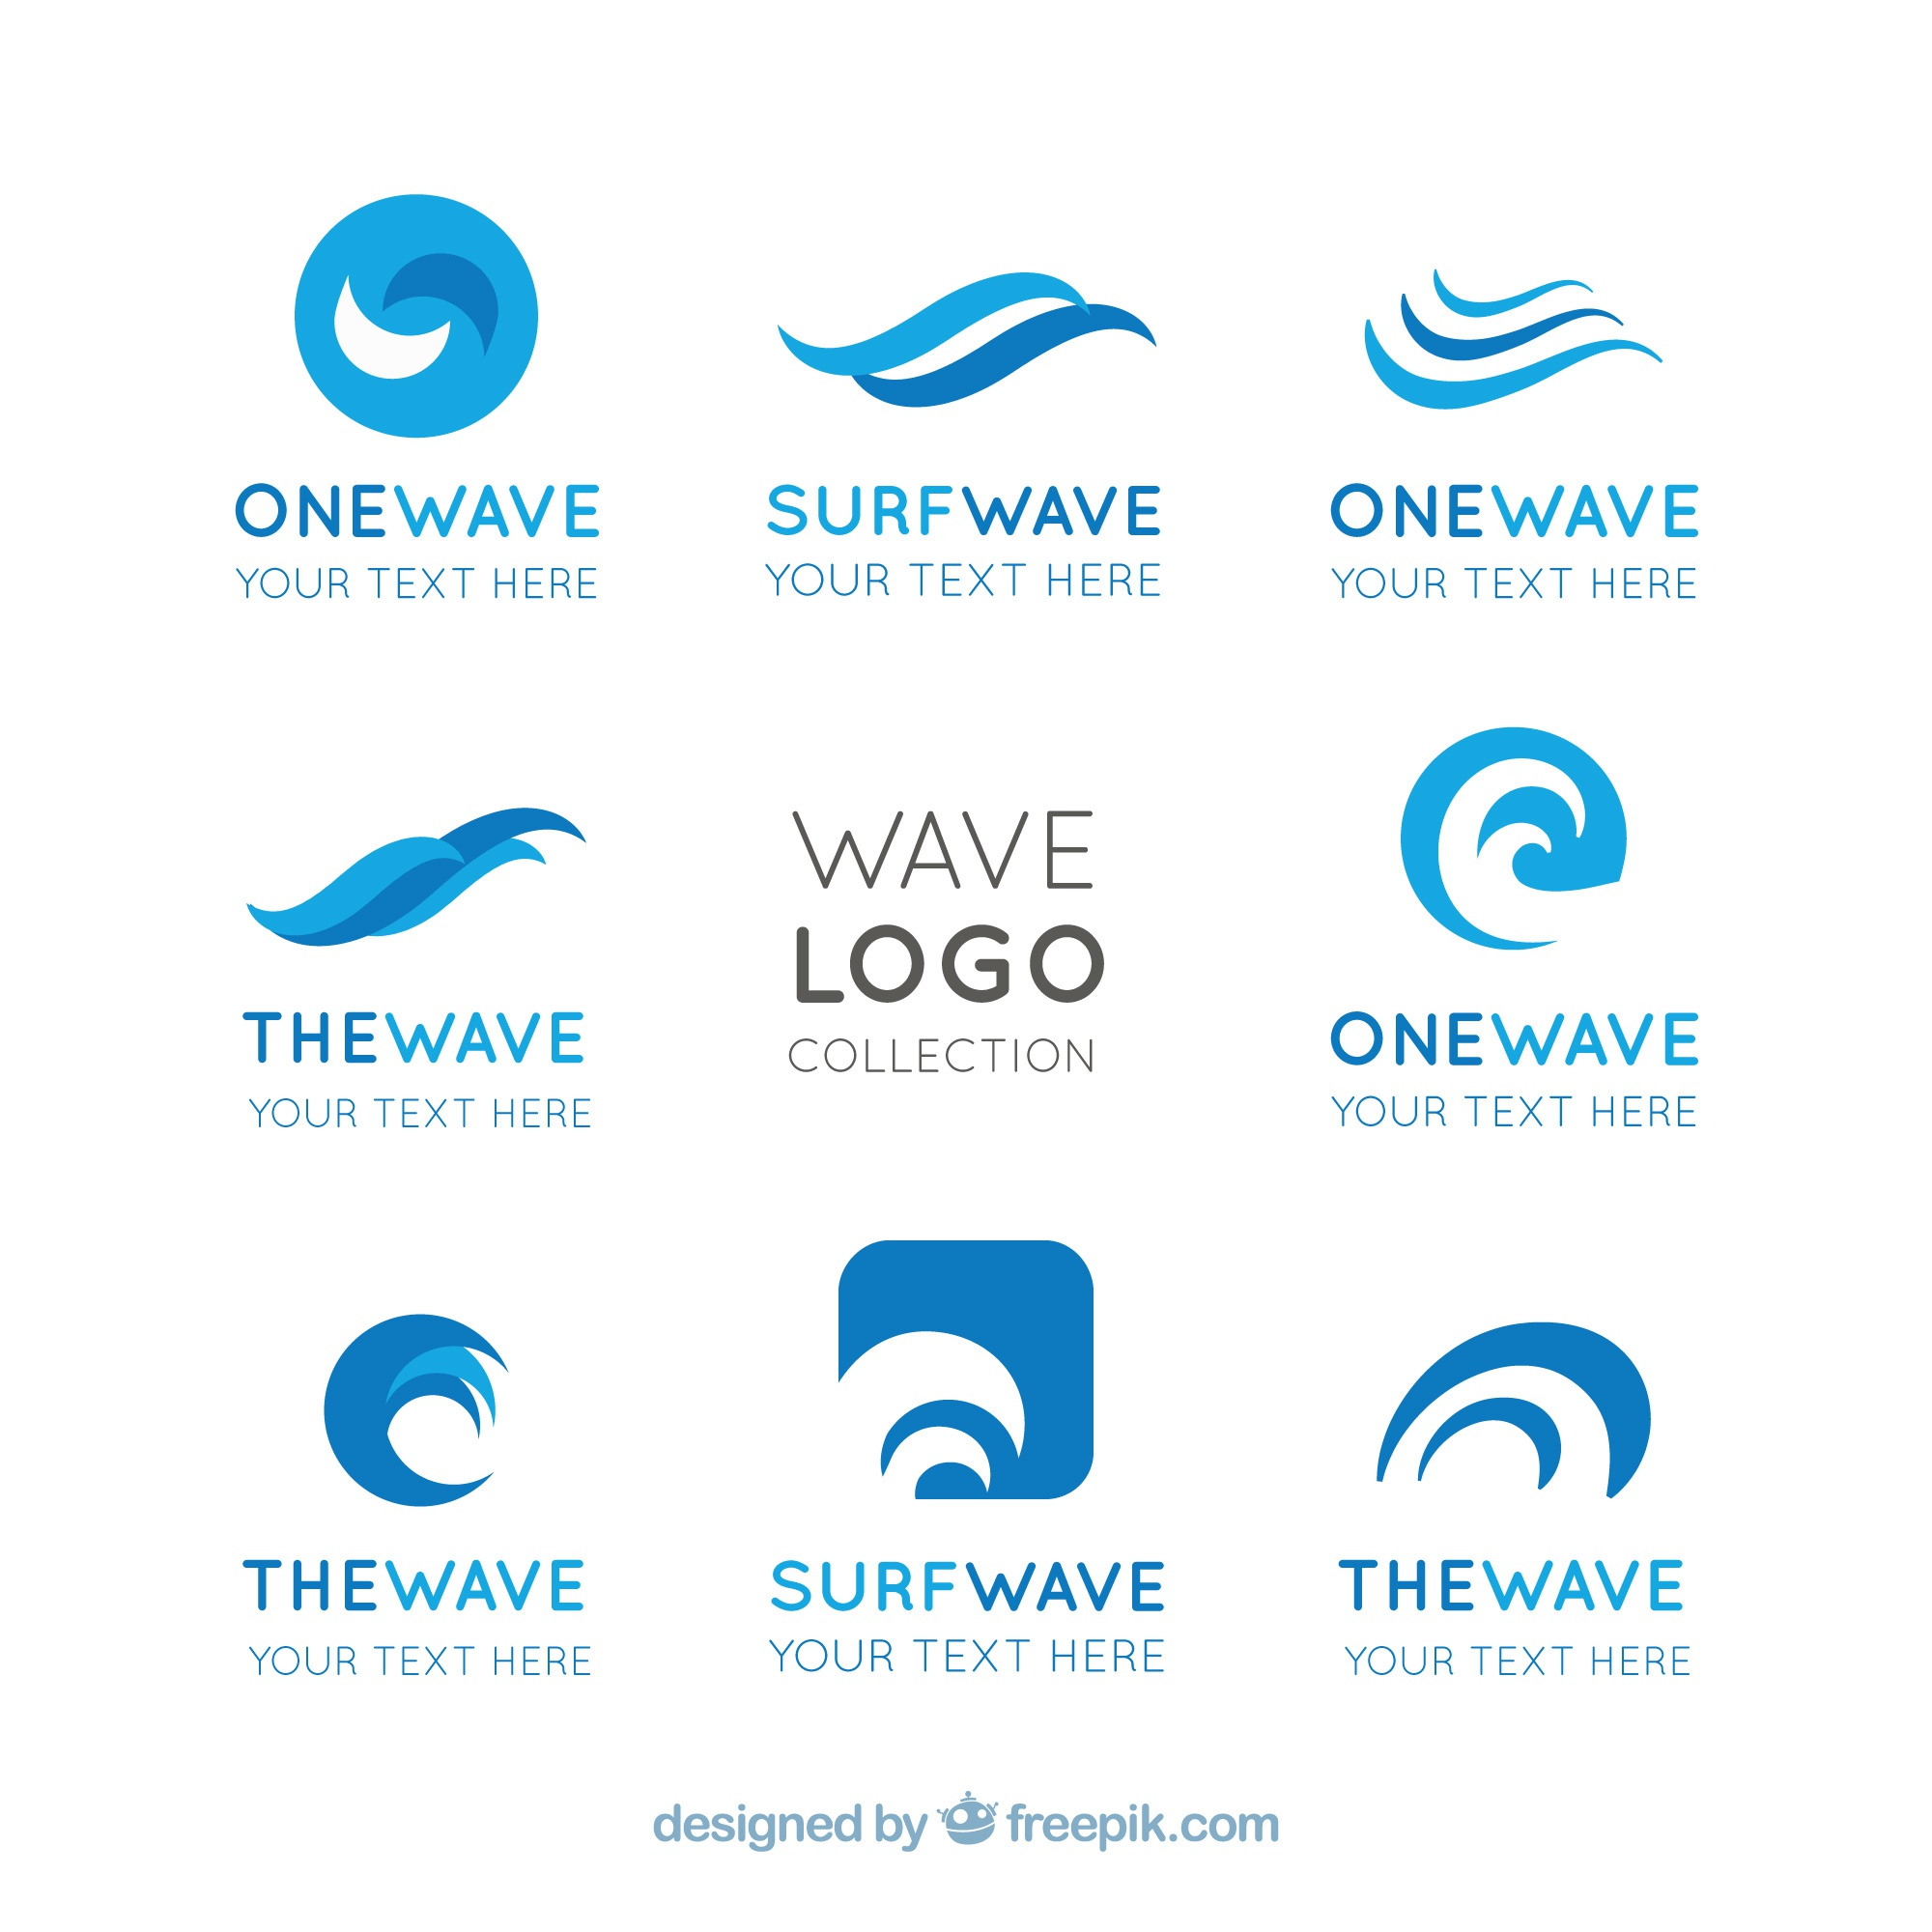 Flat pack of wave logos with abstract designs